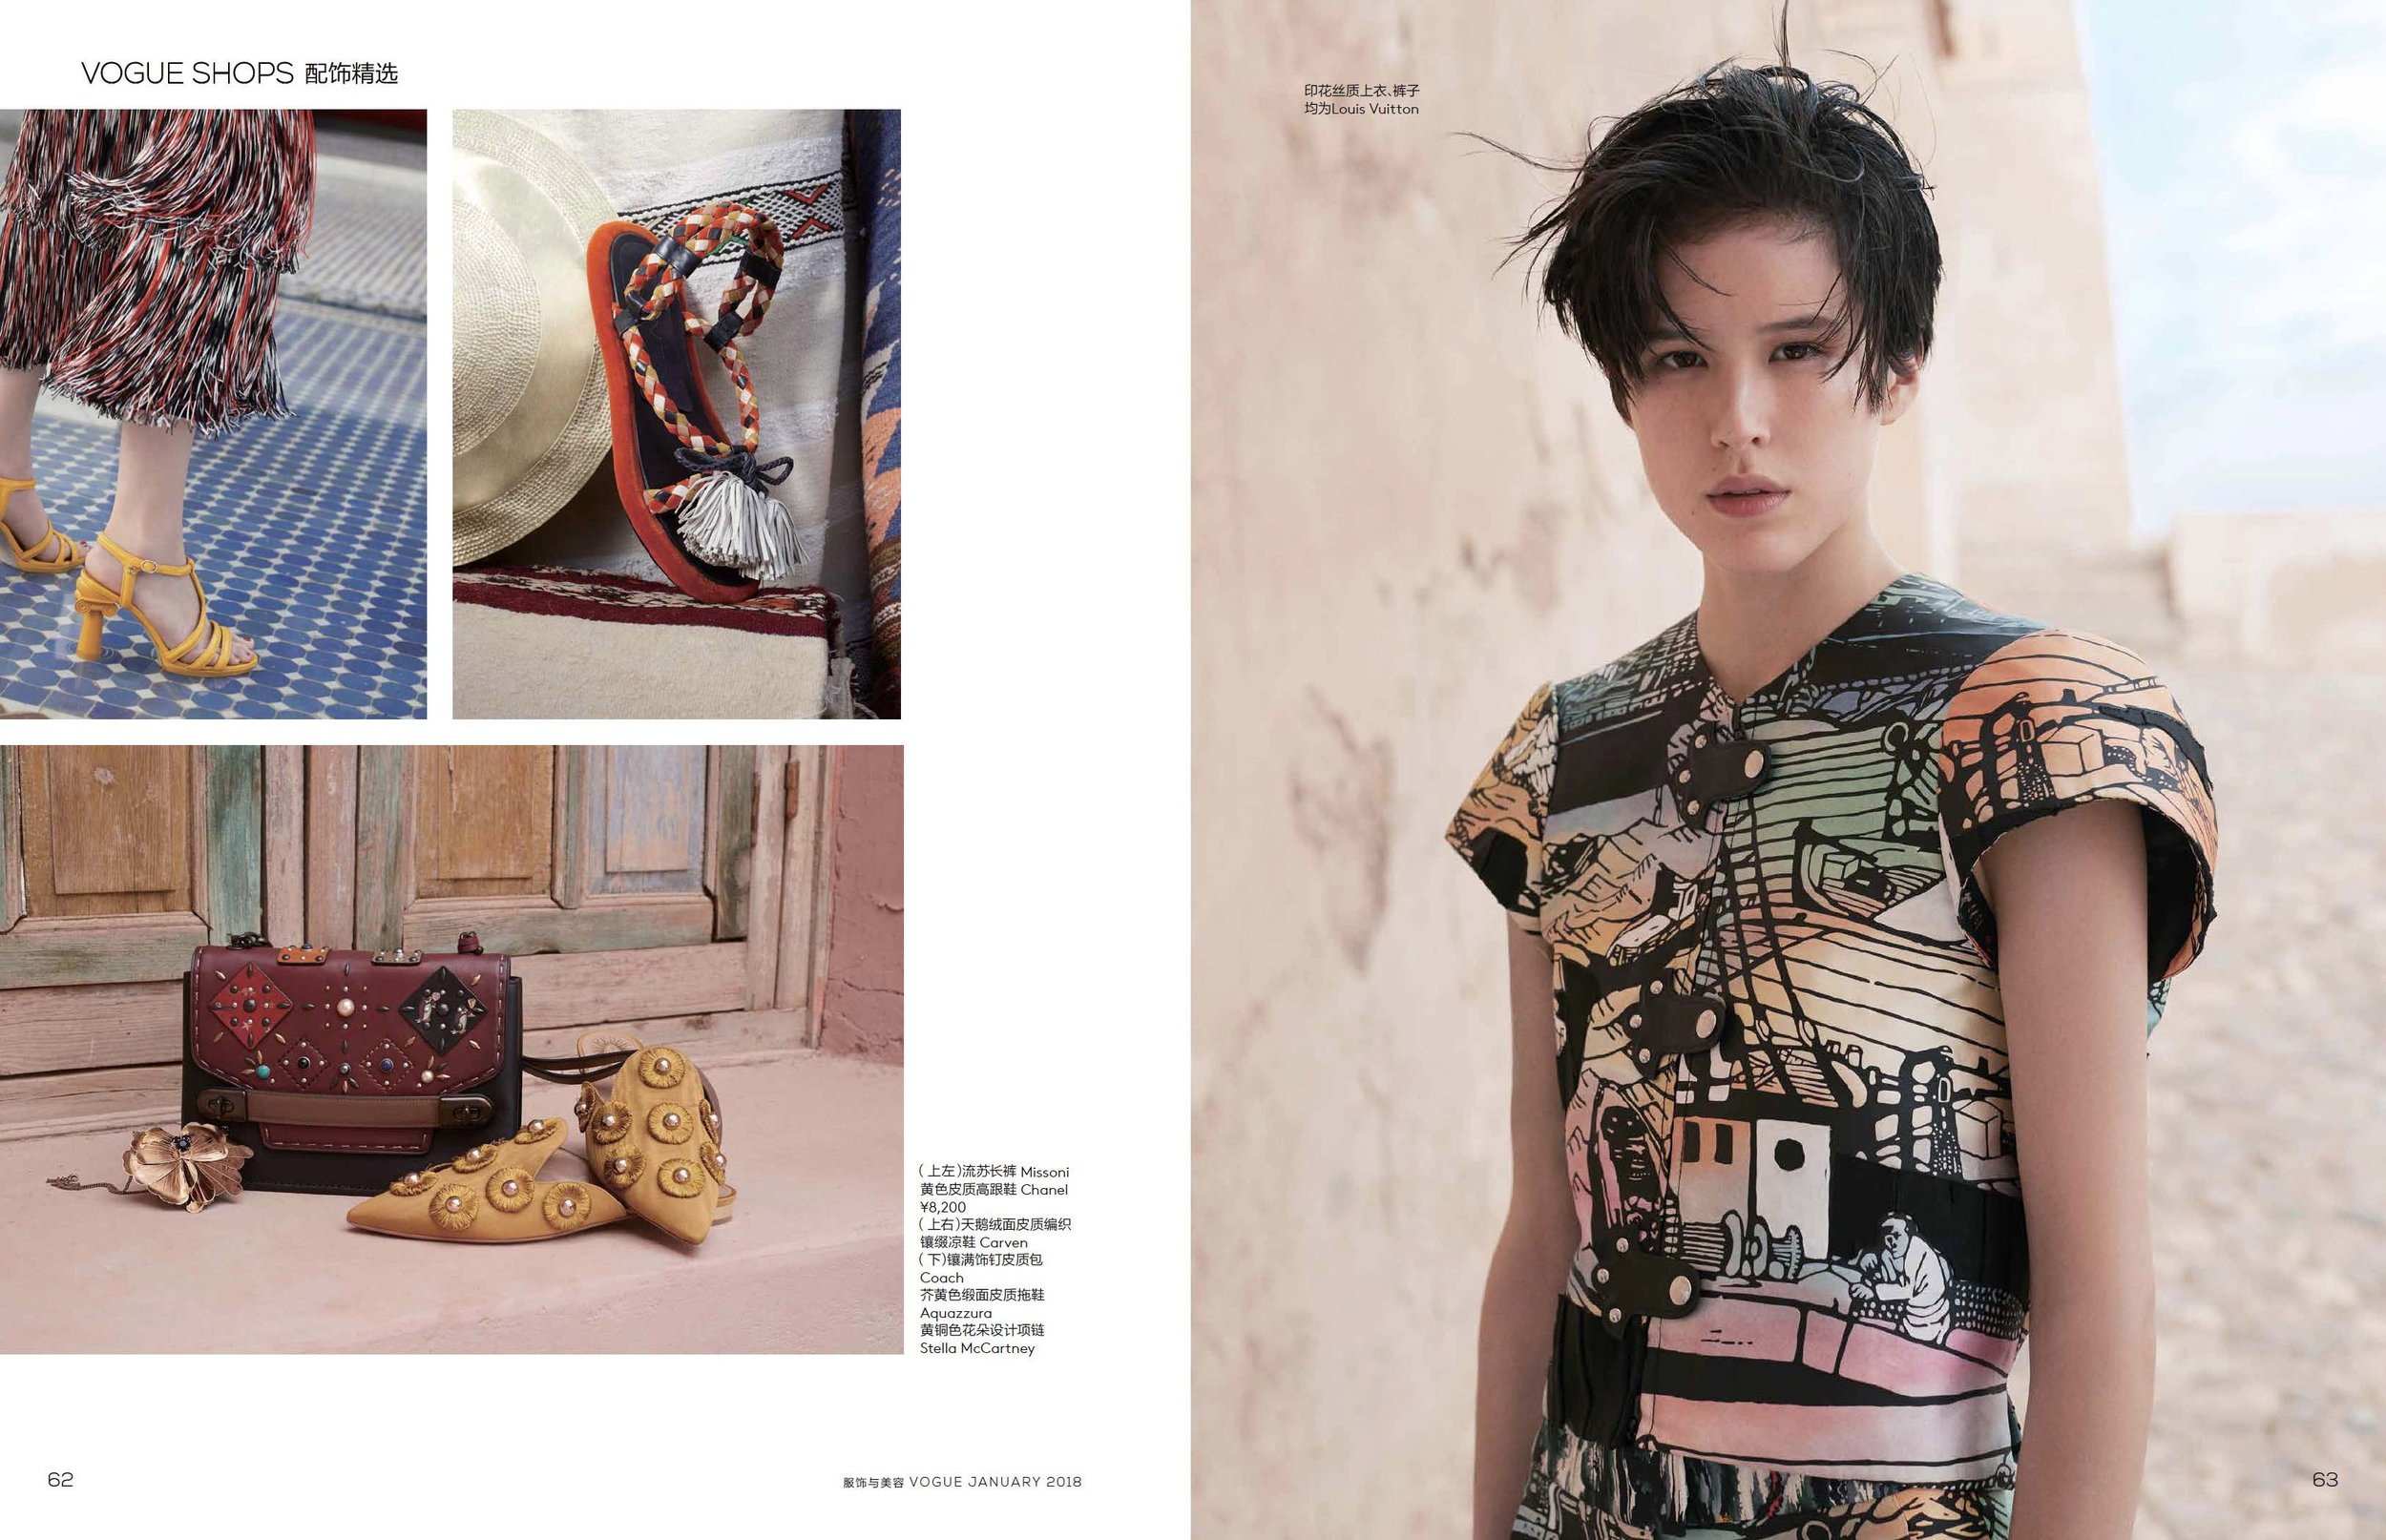 SPSS0711 Vogue China Morocco Shoot_page04.jpg